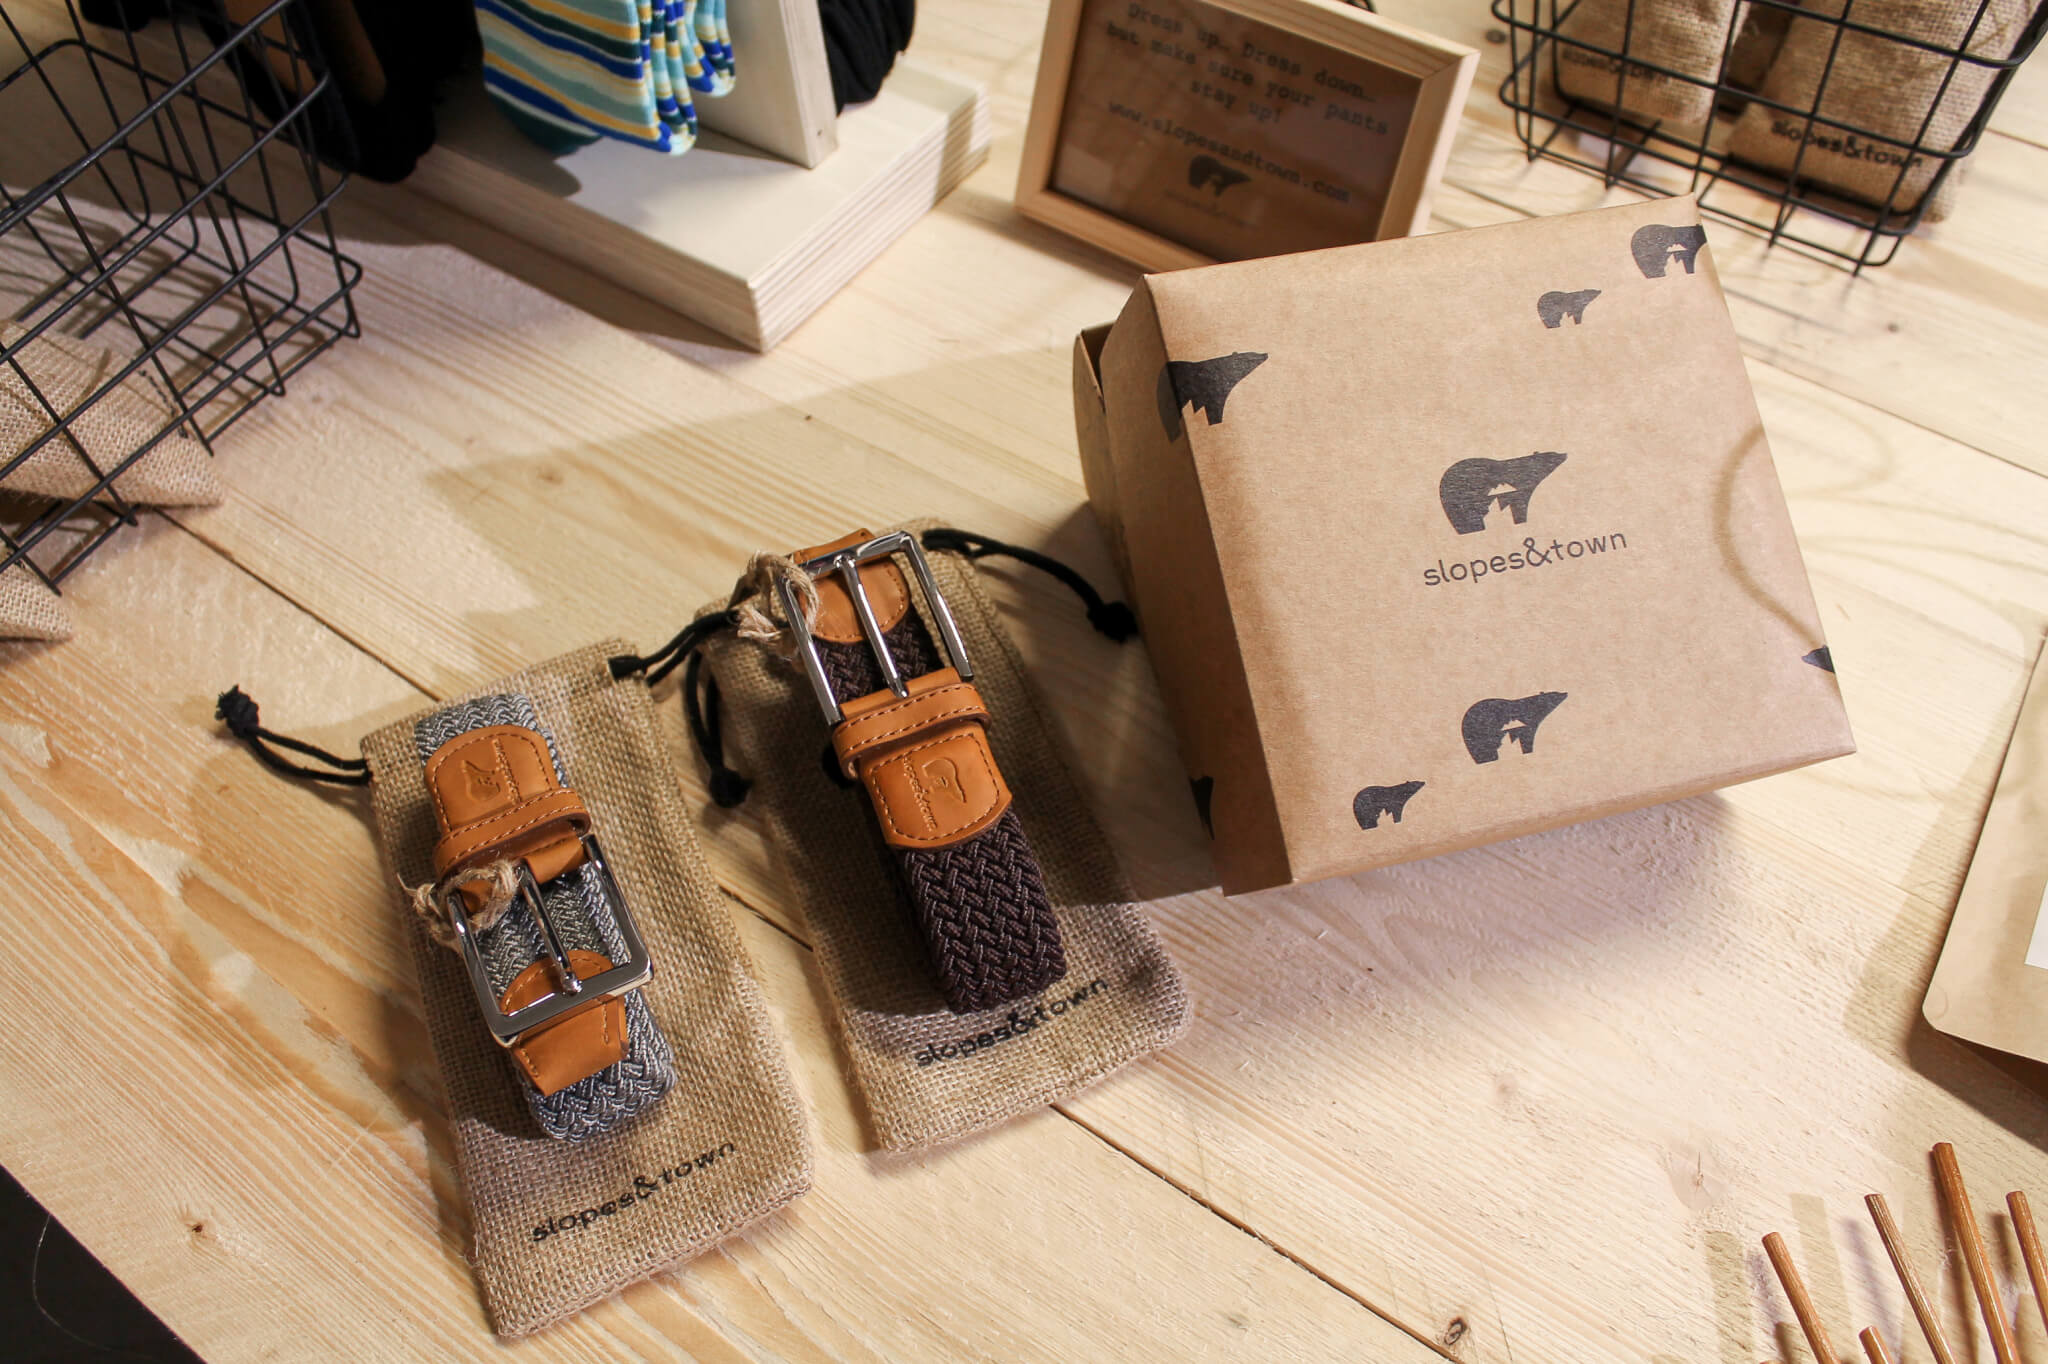 Slopes & Town packaging